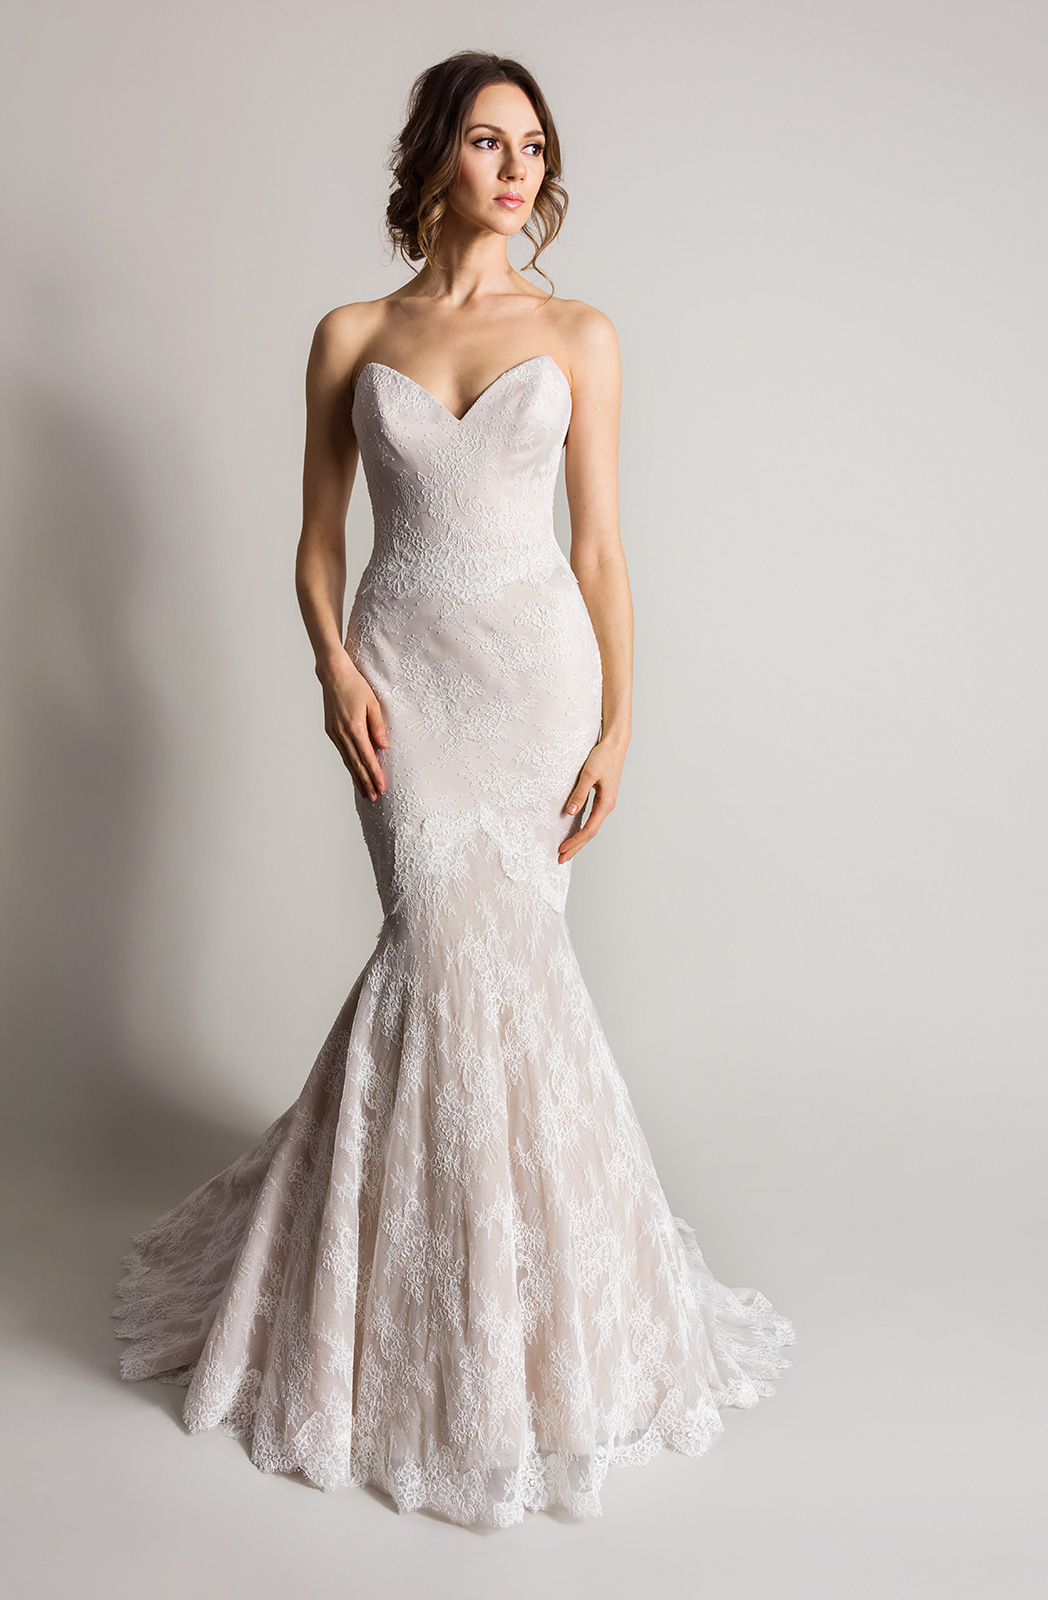 coloured wedding dresses from our favourite bridal designers champagne colored wedding dress Design by a